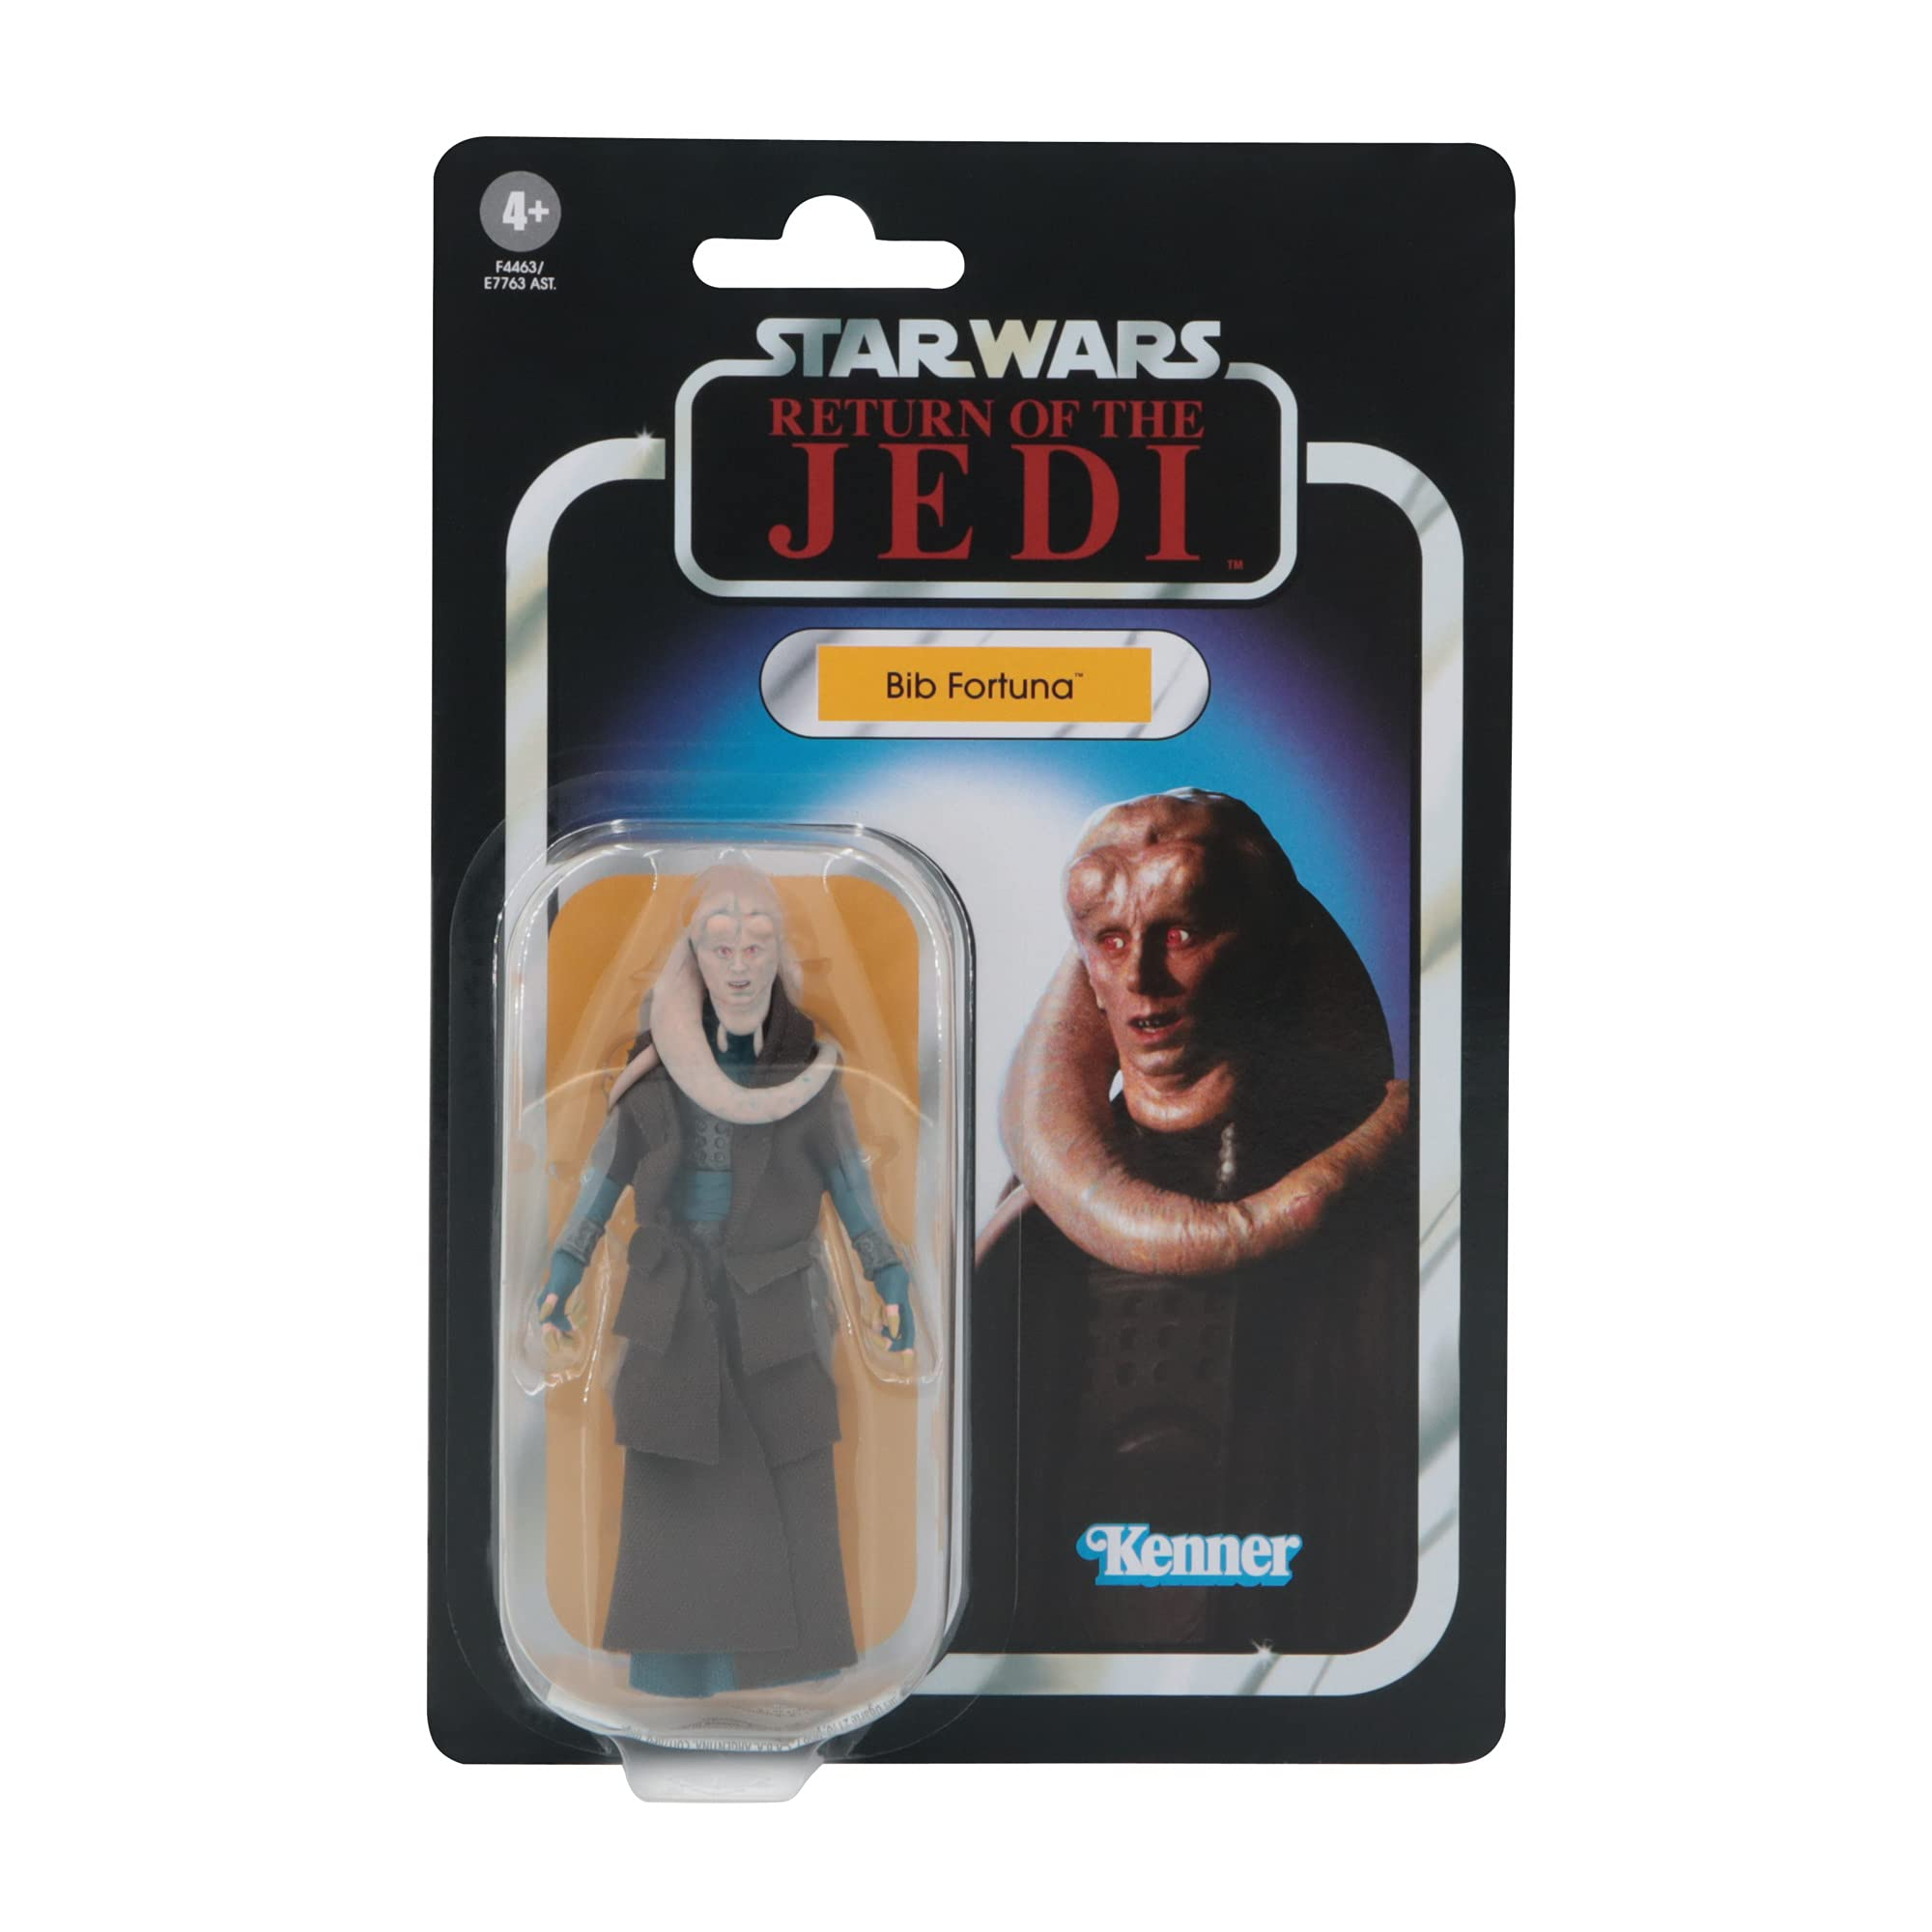 Star Wars The Vintage Collection Bib Fortuna Toy, 3.75-Inch-Scale Return of The Jedi Back Action Figure, Toys for Ages 4 and Up